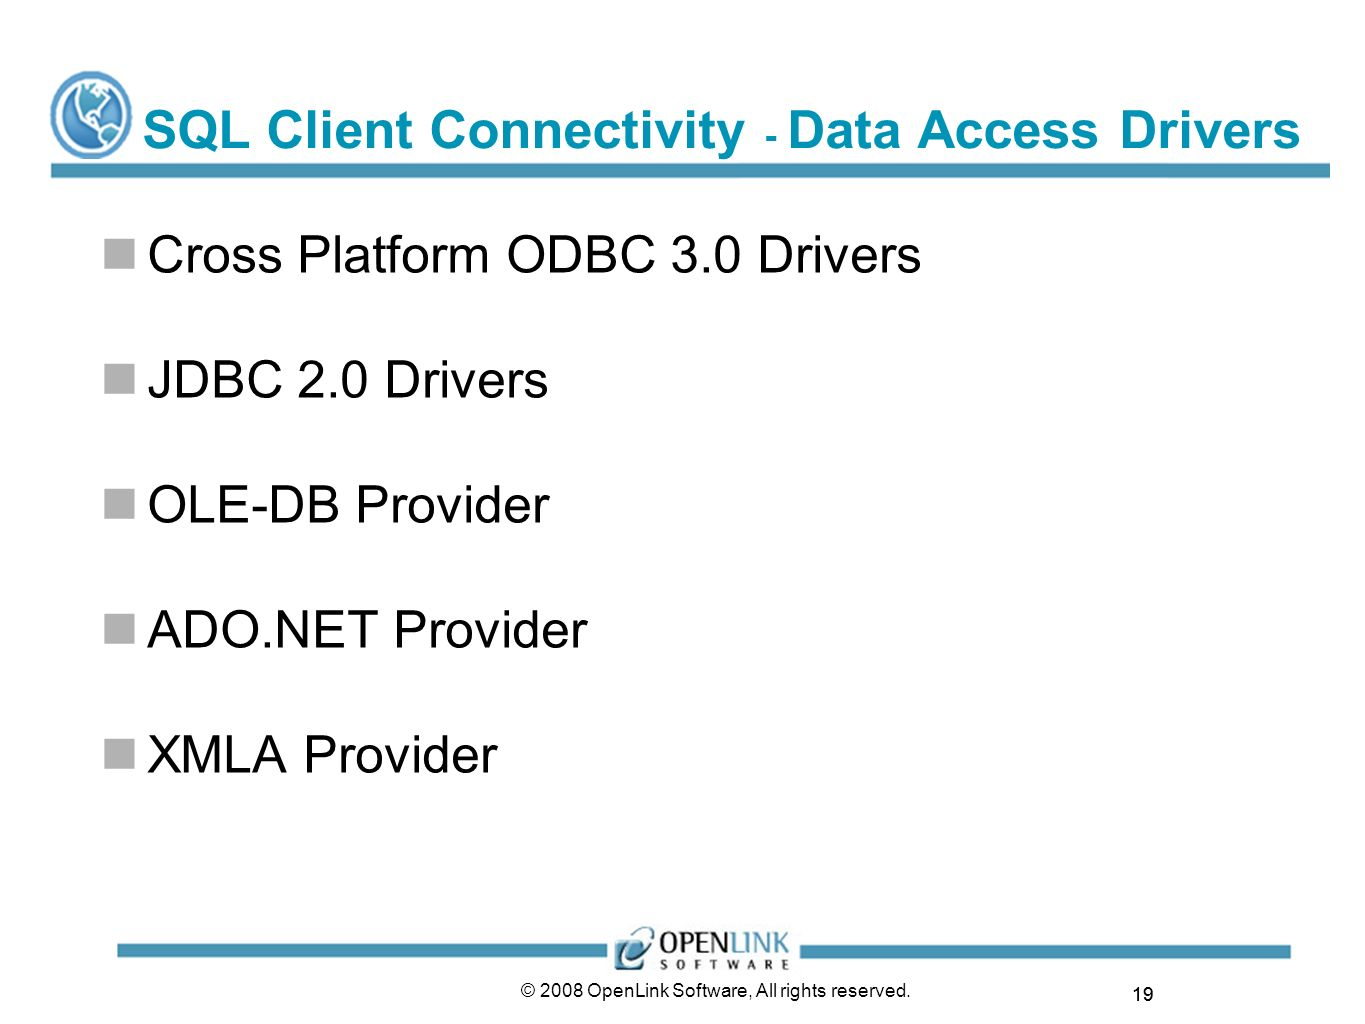 19 © 2008 OpenLink Software, All rights reserved. SQL Client Connectivity - Data Access Drivers Cross Platform ODBC 3.0 Drivers JDBC 2.0 Drivers OLE-D